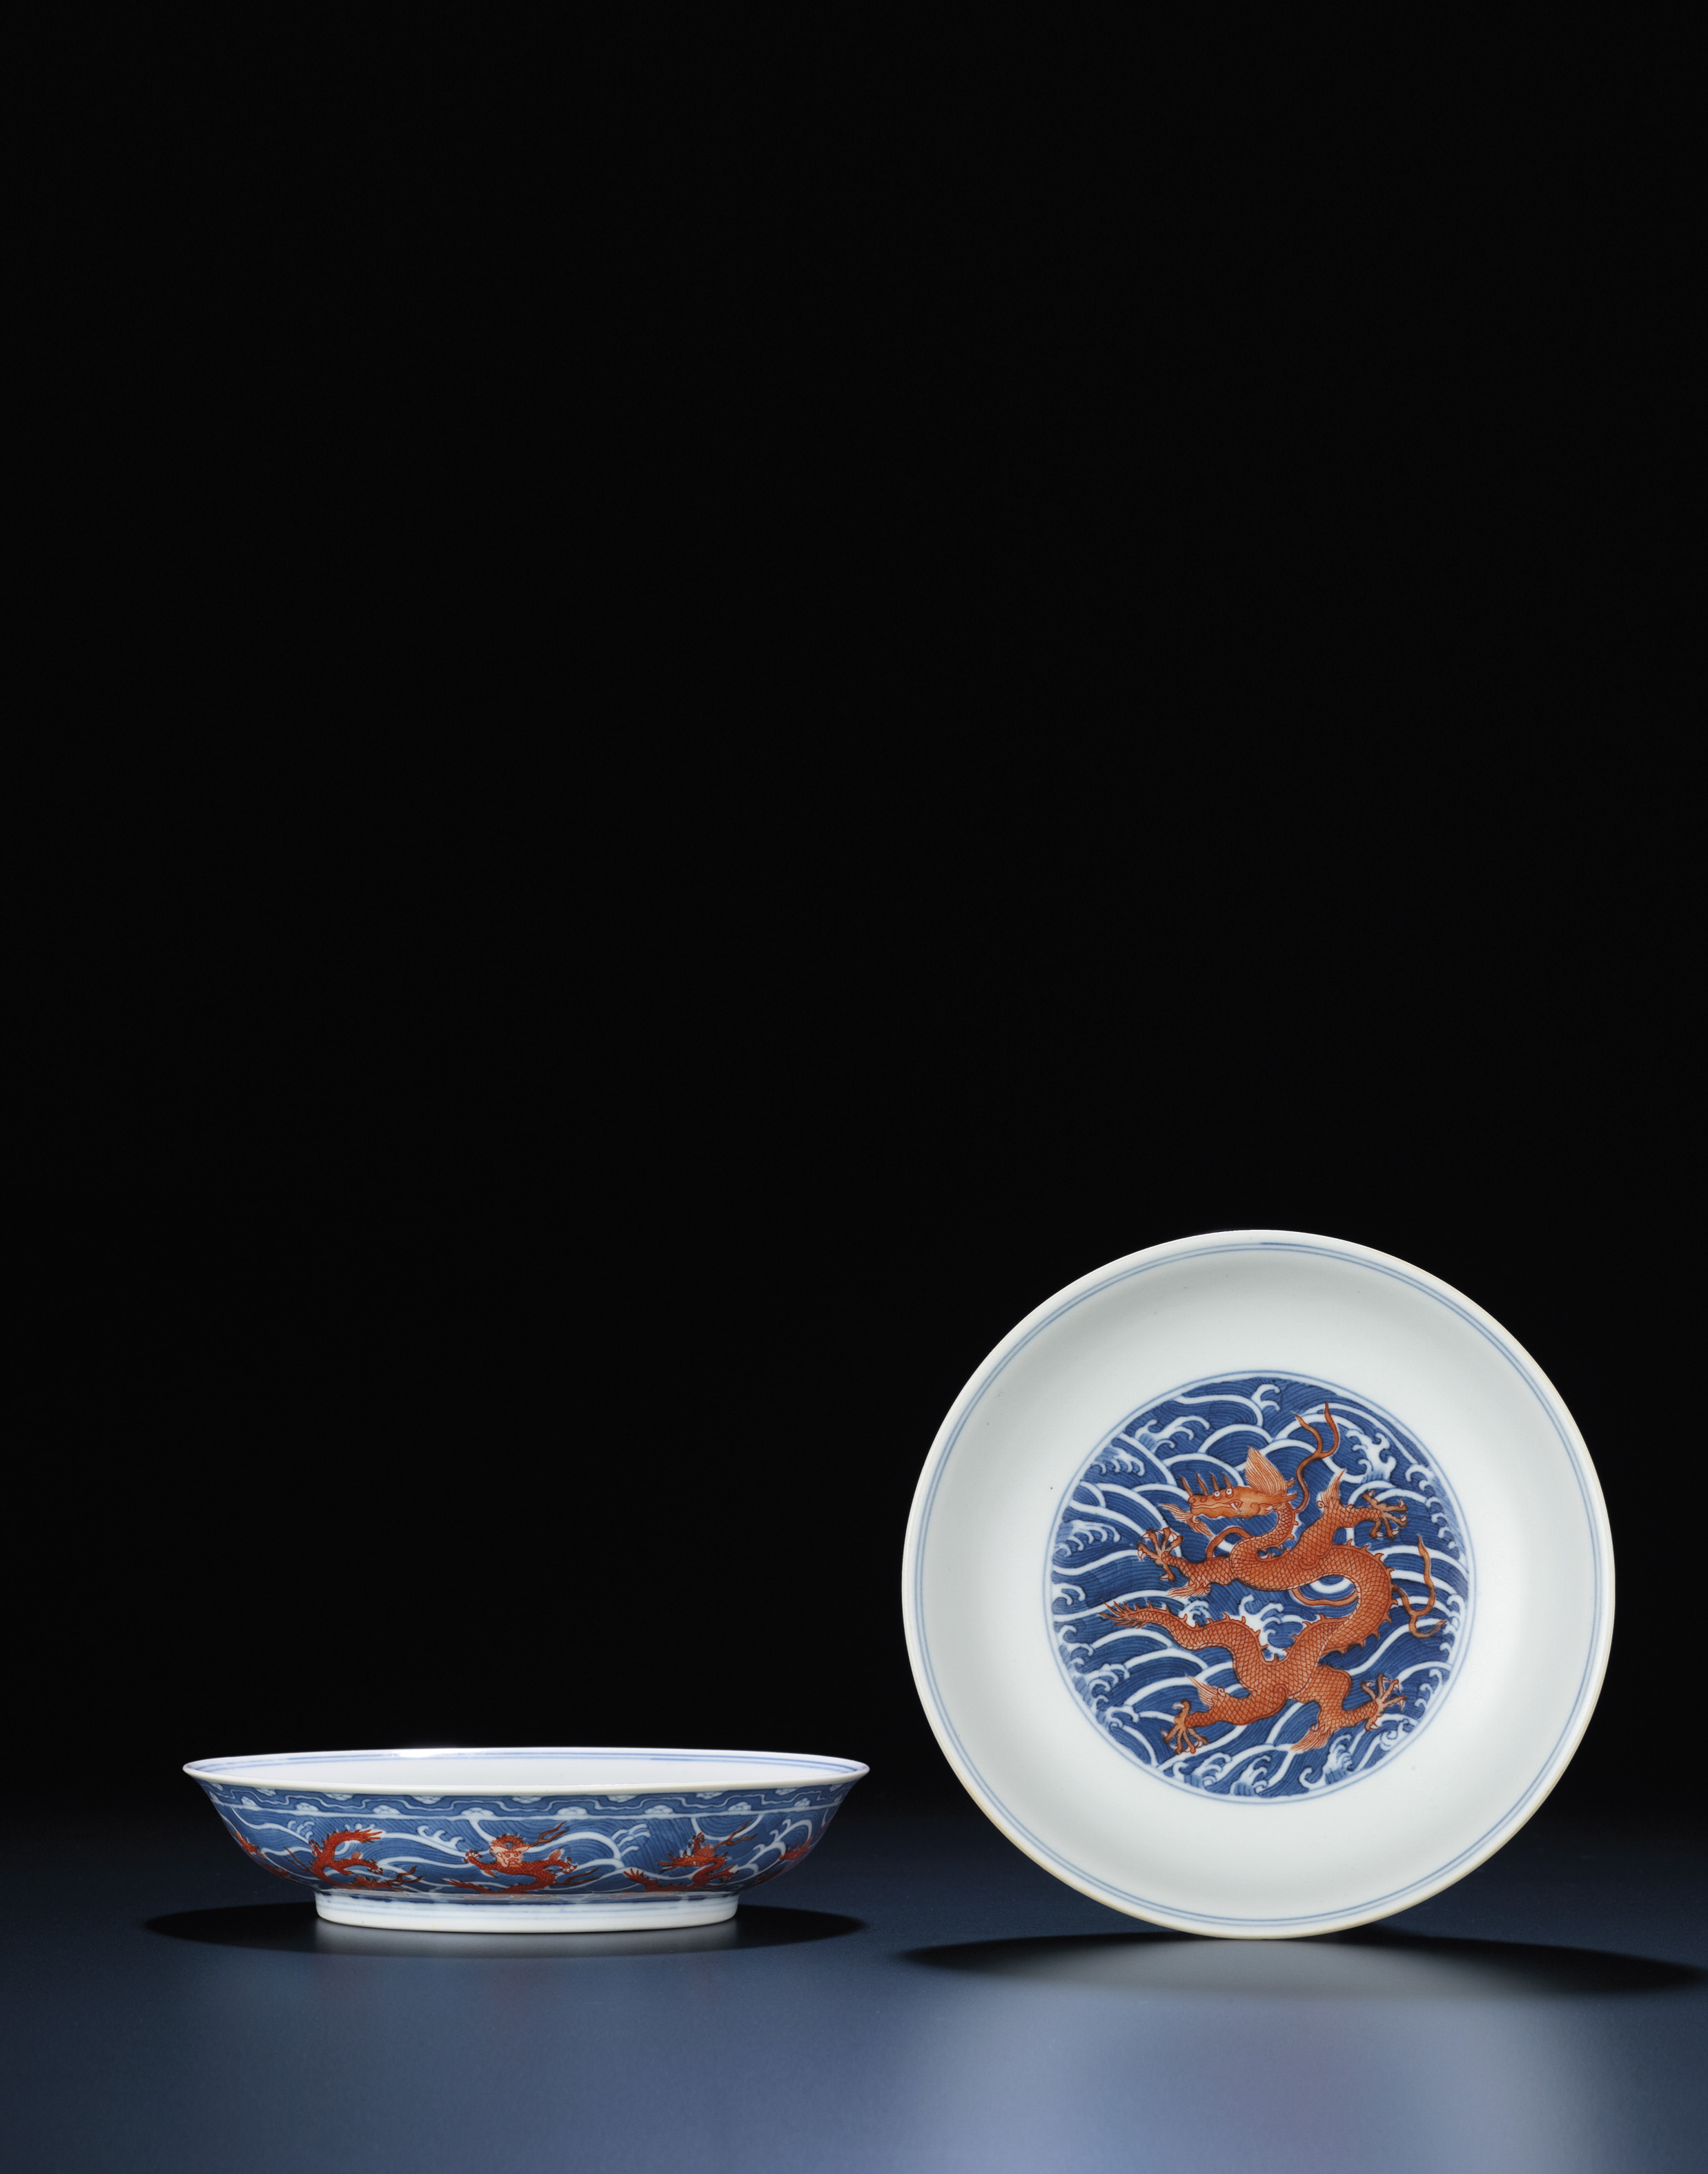 A FINE PAIR OF IRON-RED DECORATED BLUE AND WHITE DISHES